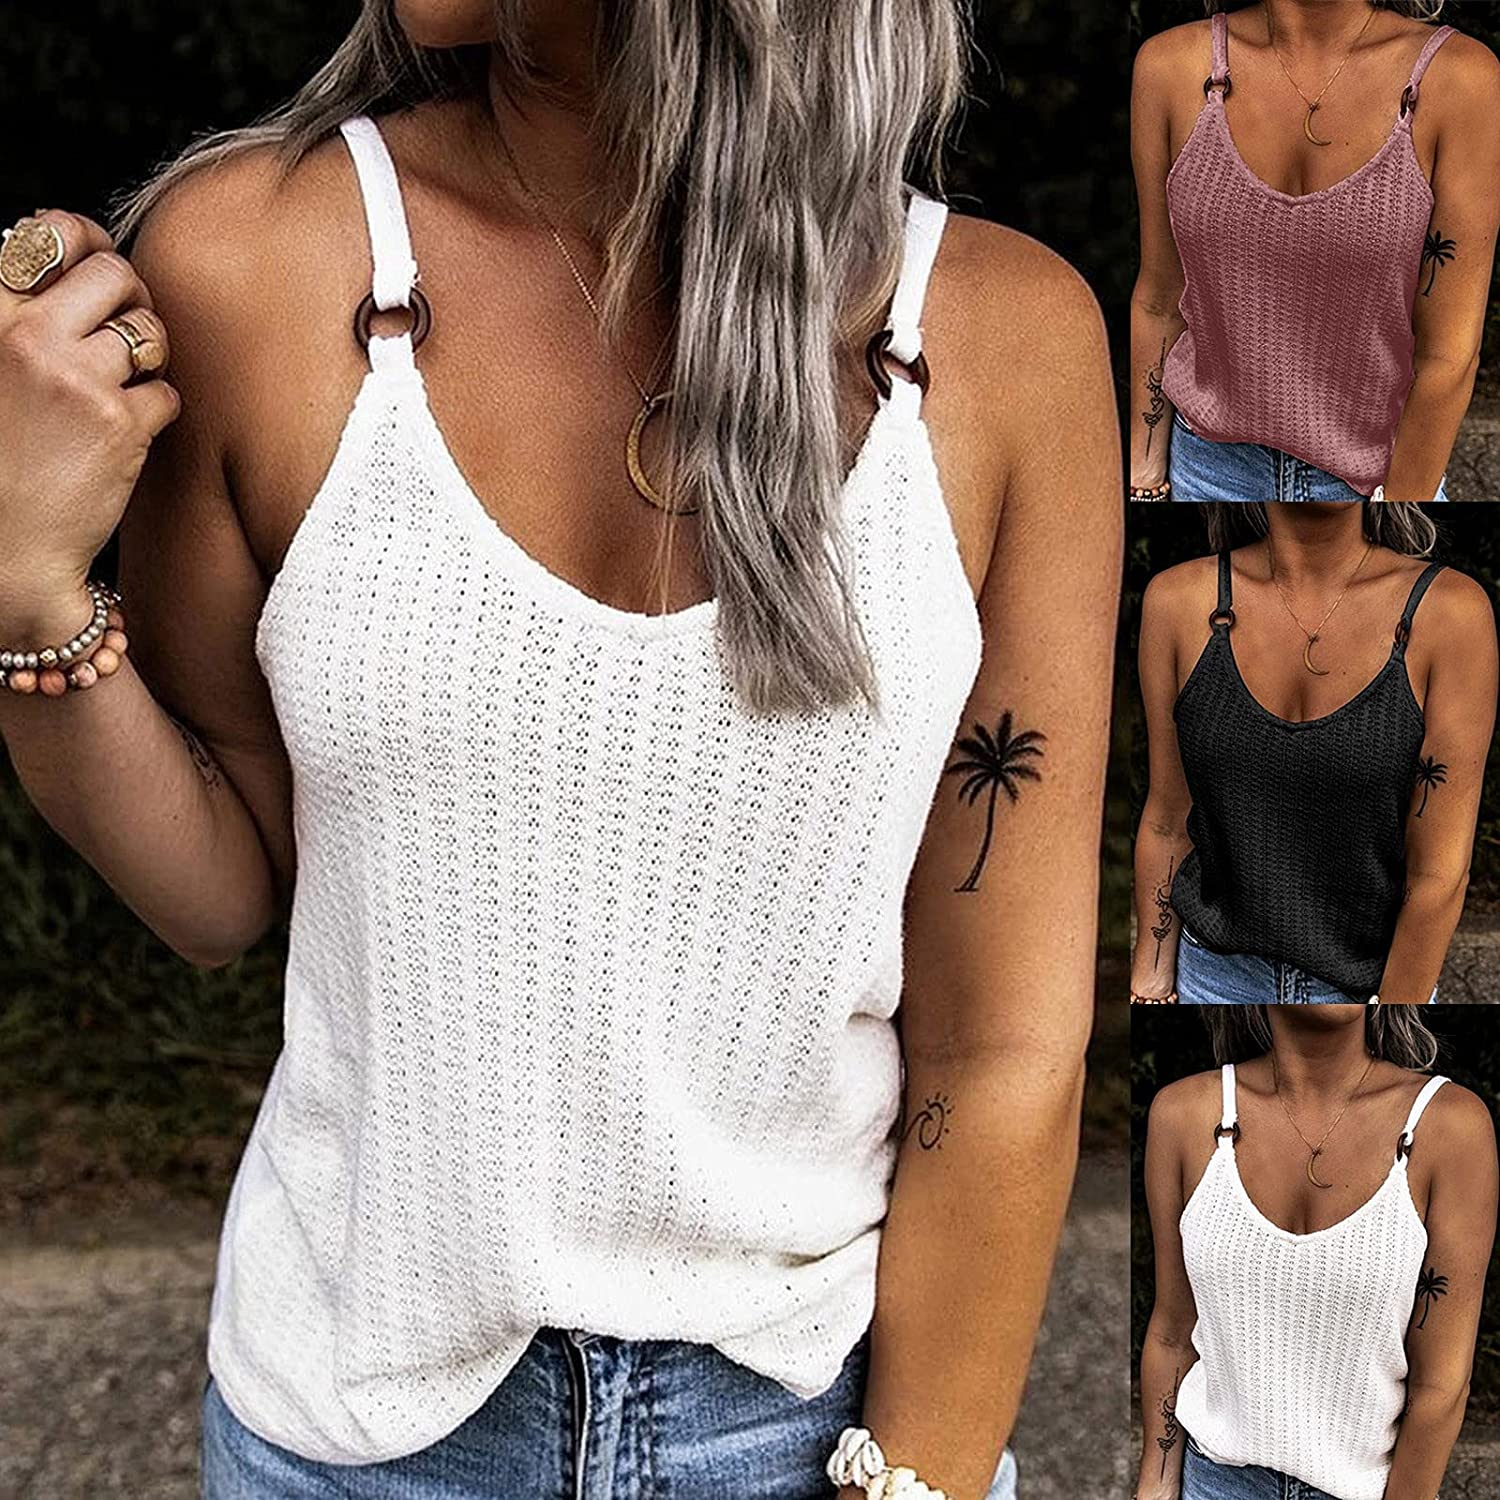 DIOMOR Summer Fashion Tops Camisole for Women V-Neck Sleeveless Hollow Spaghetti Shirts Blouse Tunic Beach Tank Top Vest